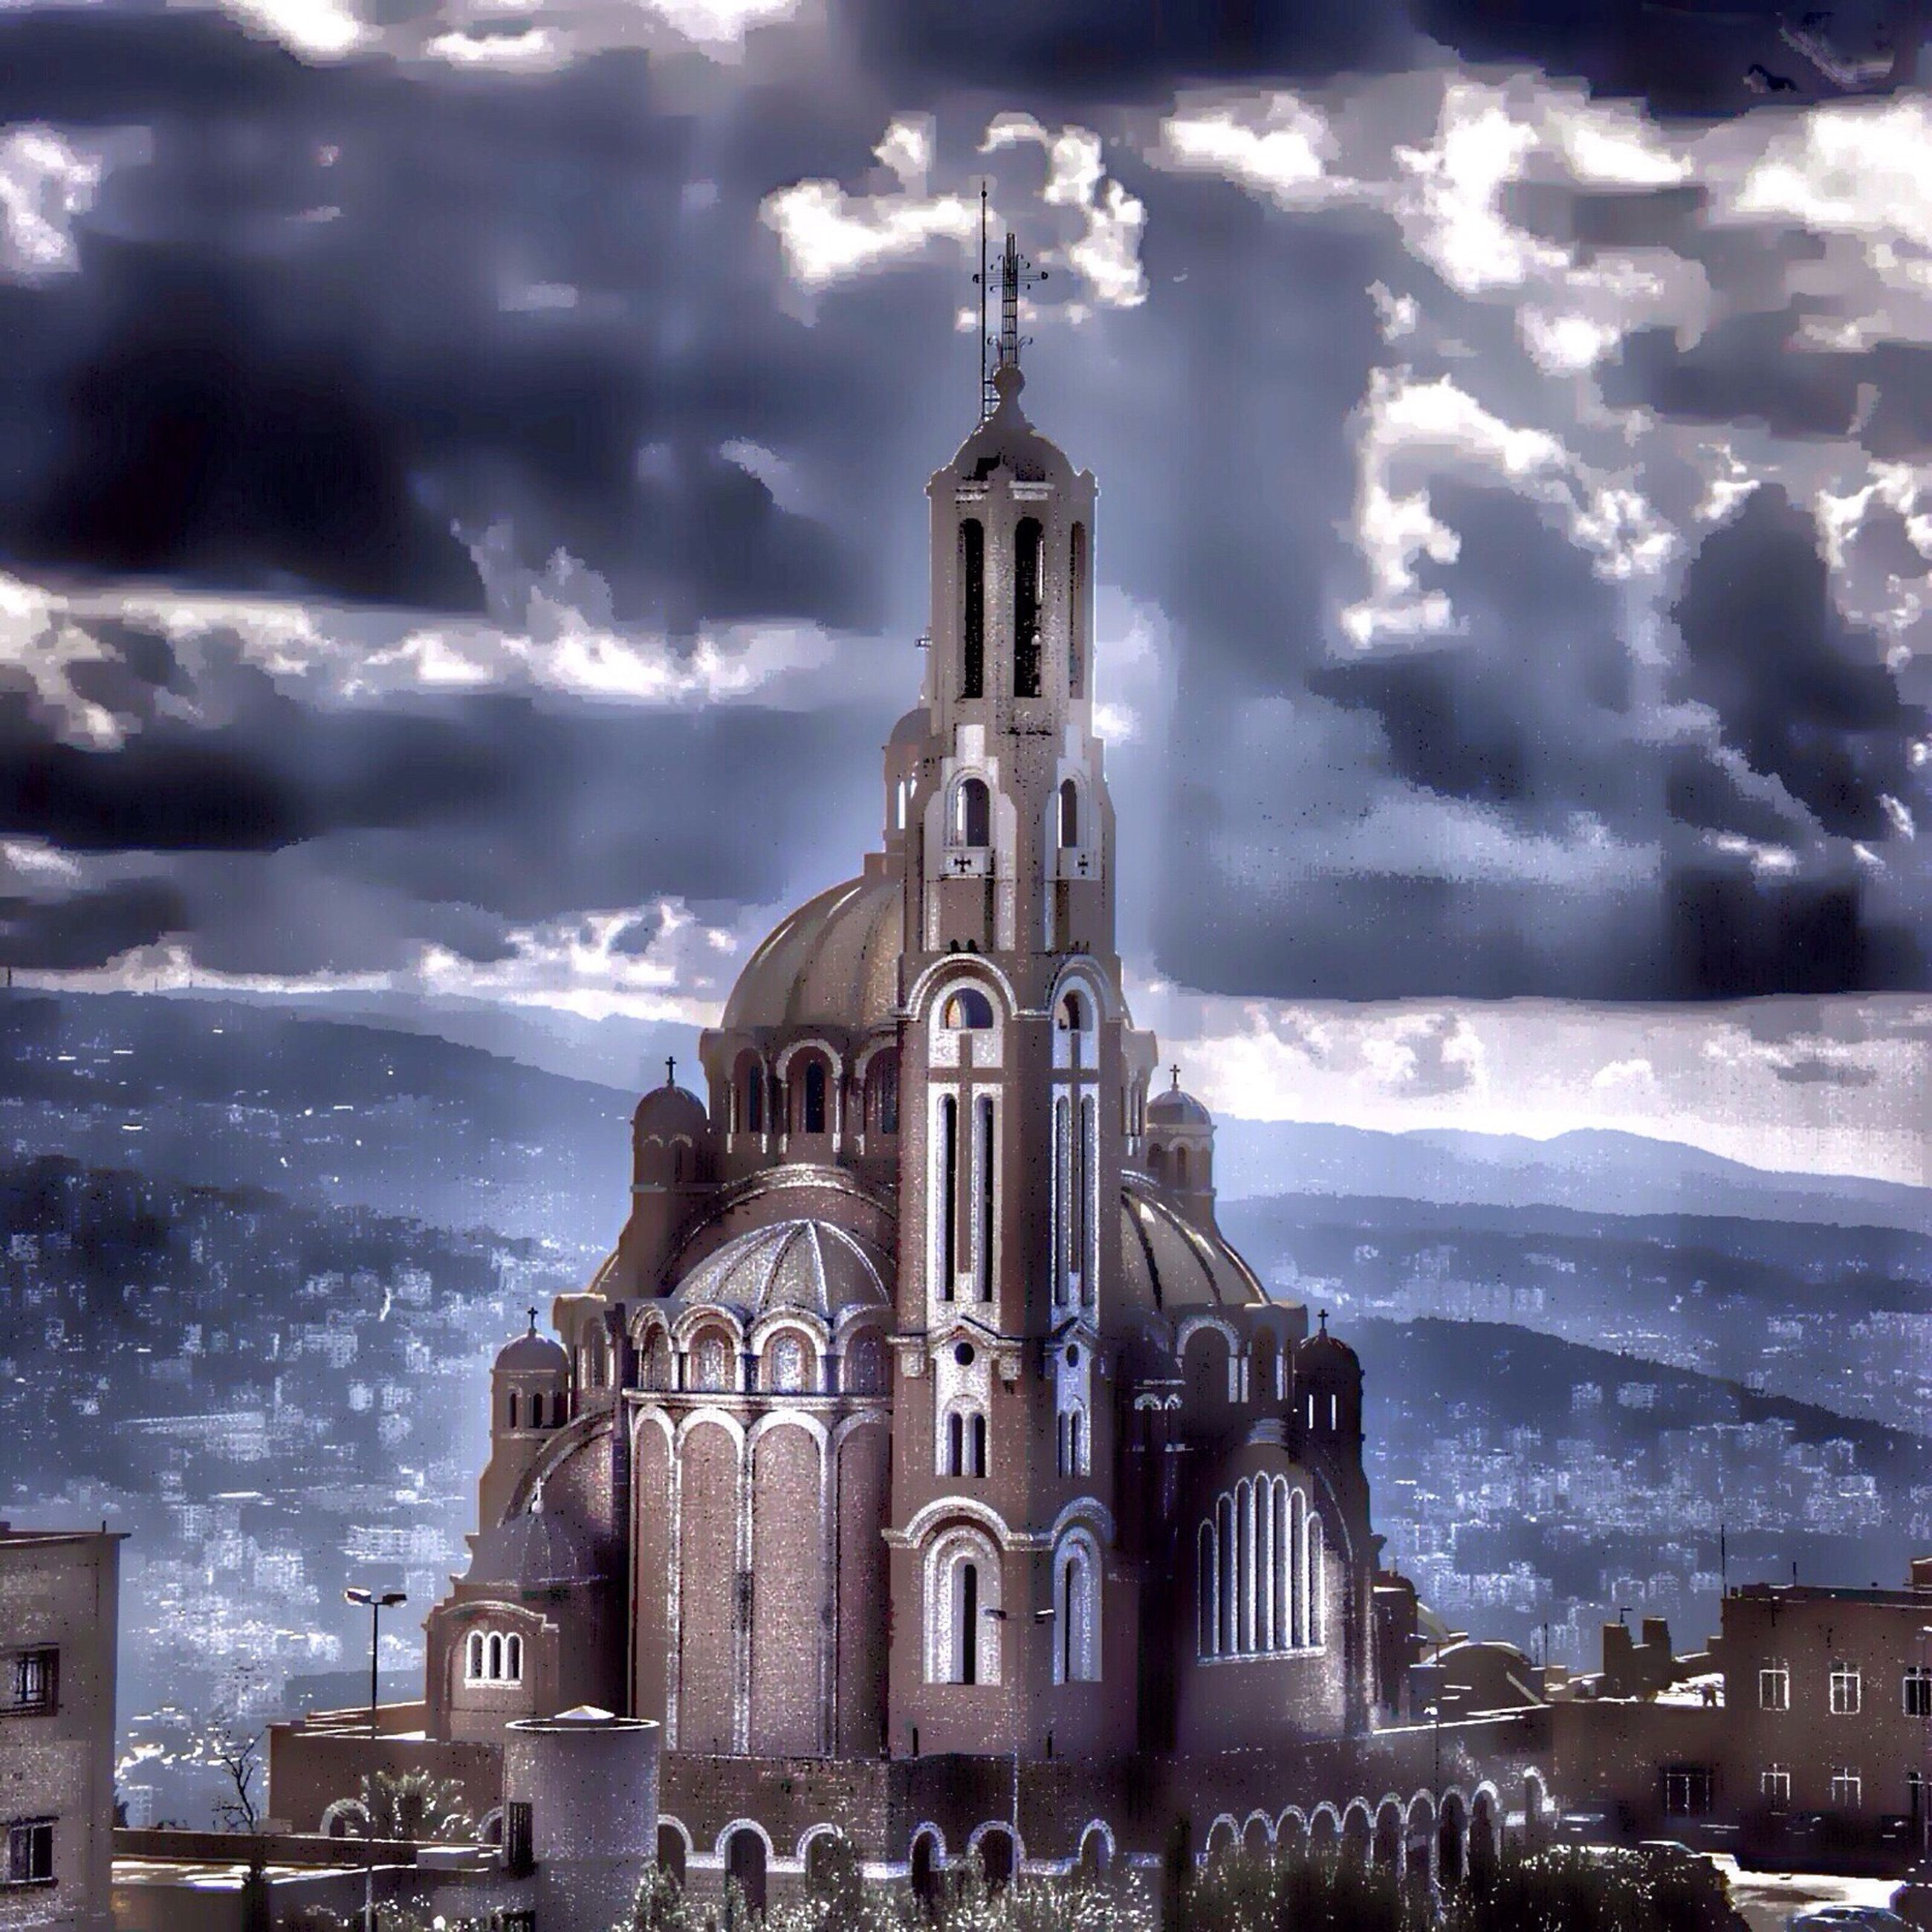 religion, spirituality, place of worship, church, architecture, building exterior, built structure, sky, cathedral, cloud - sky, travel destinations, tourism, bell tower - tower, bell tower, tower, famous place, outdoors, history, sea, tall - high, town, old town, culture, cloudy, baroque style, facade, cloudscape